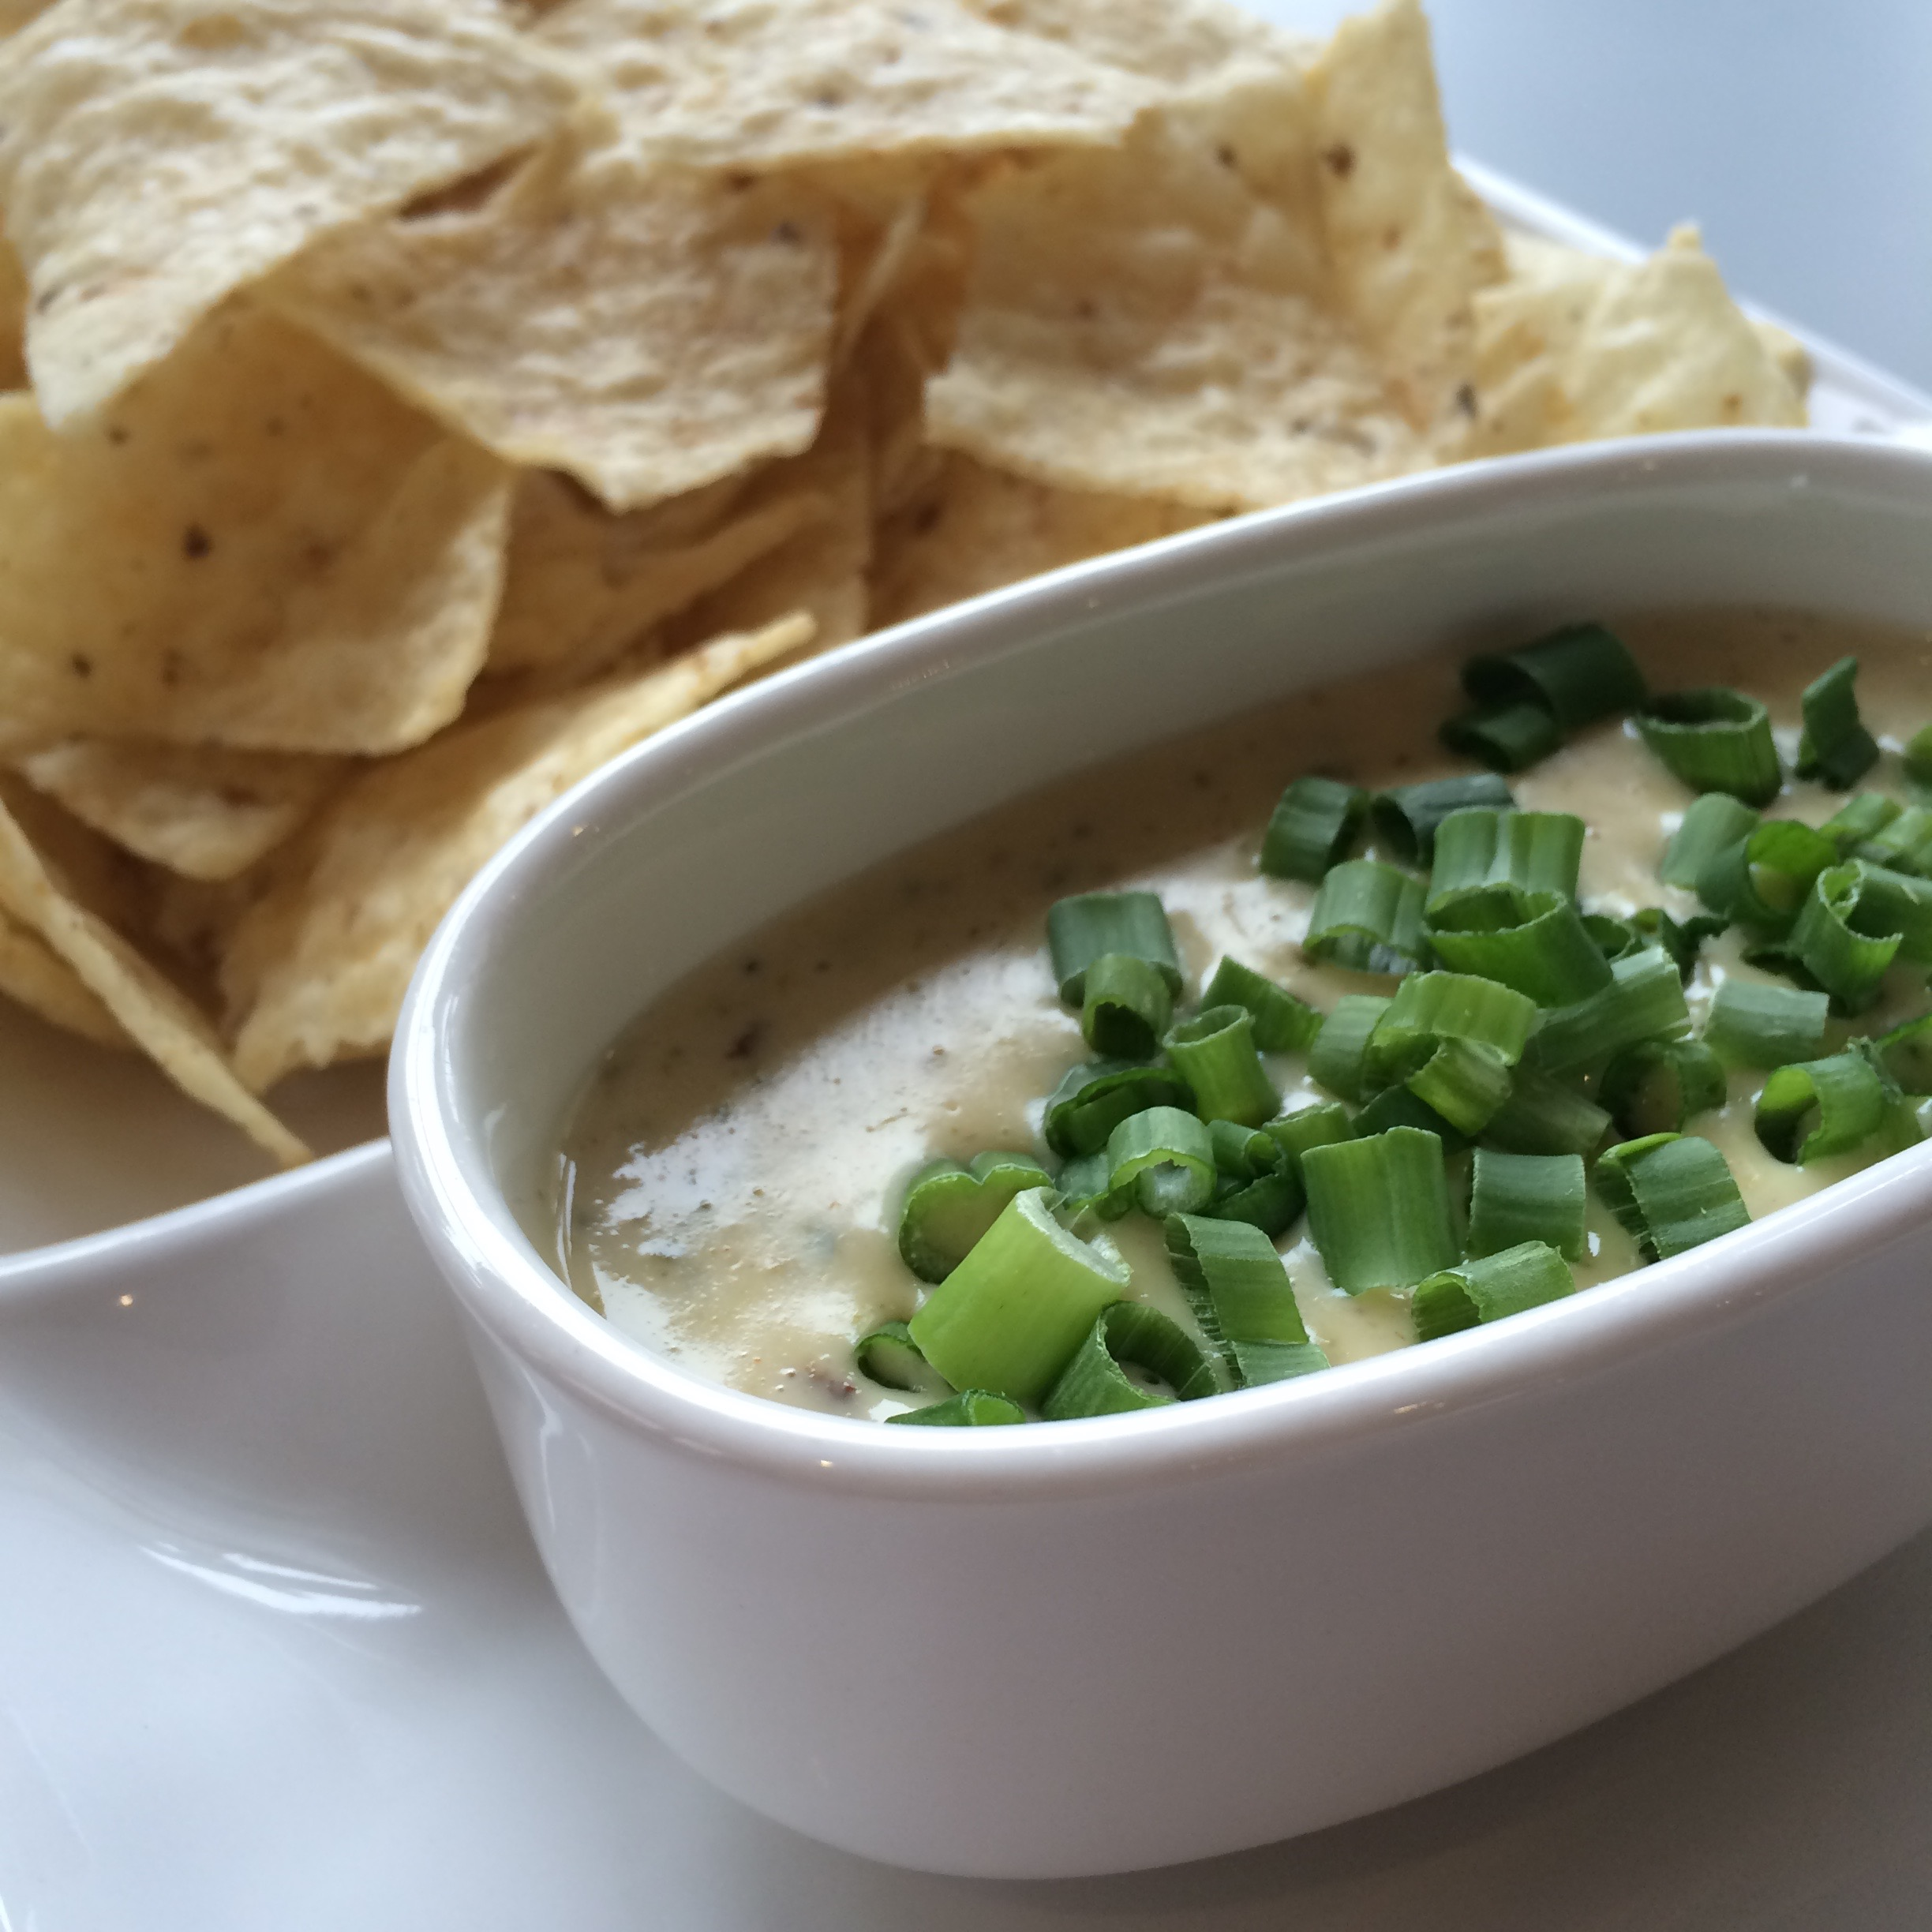 Caption: The winner of the World Cheese Dip Competition, held in Little Rock on October 31st, 2015: Poblano Goat Cheese Dip from Café @ Heifer. , Credit: Photo by Tina Antolini.